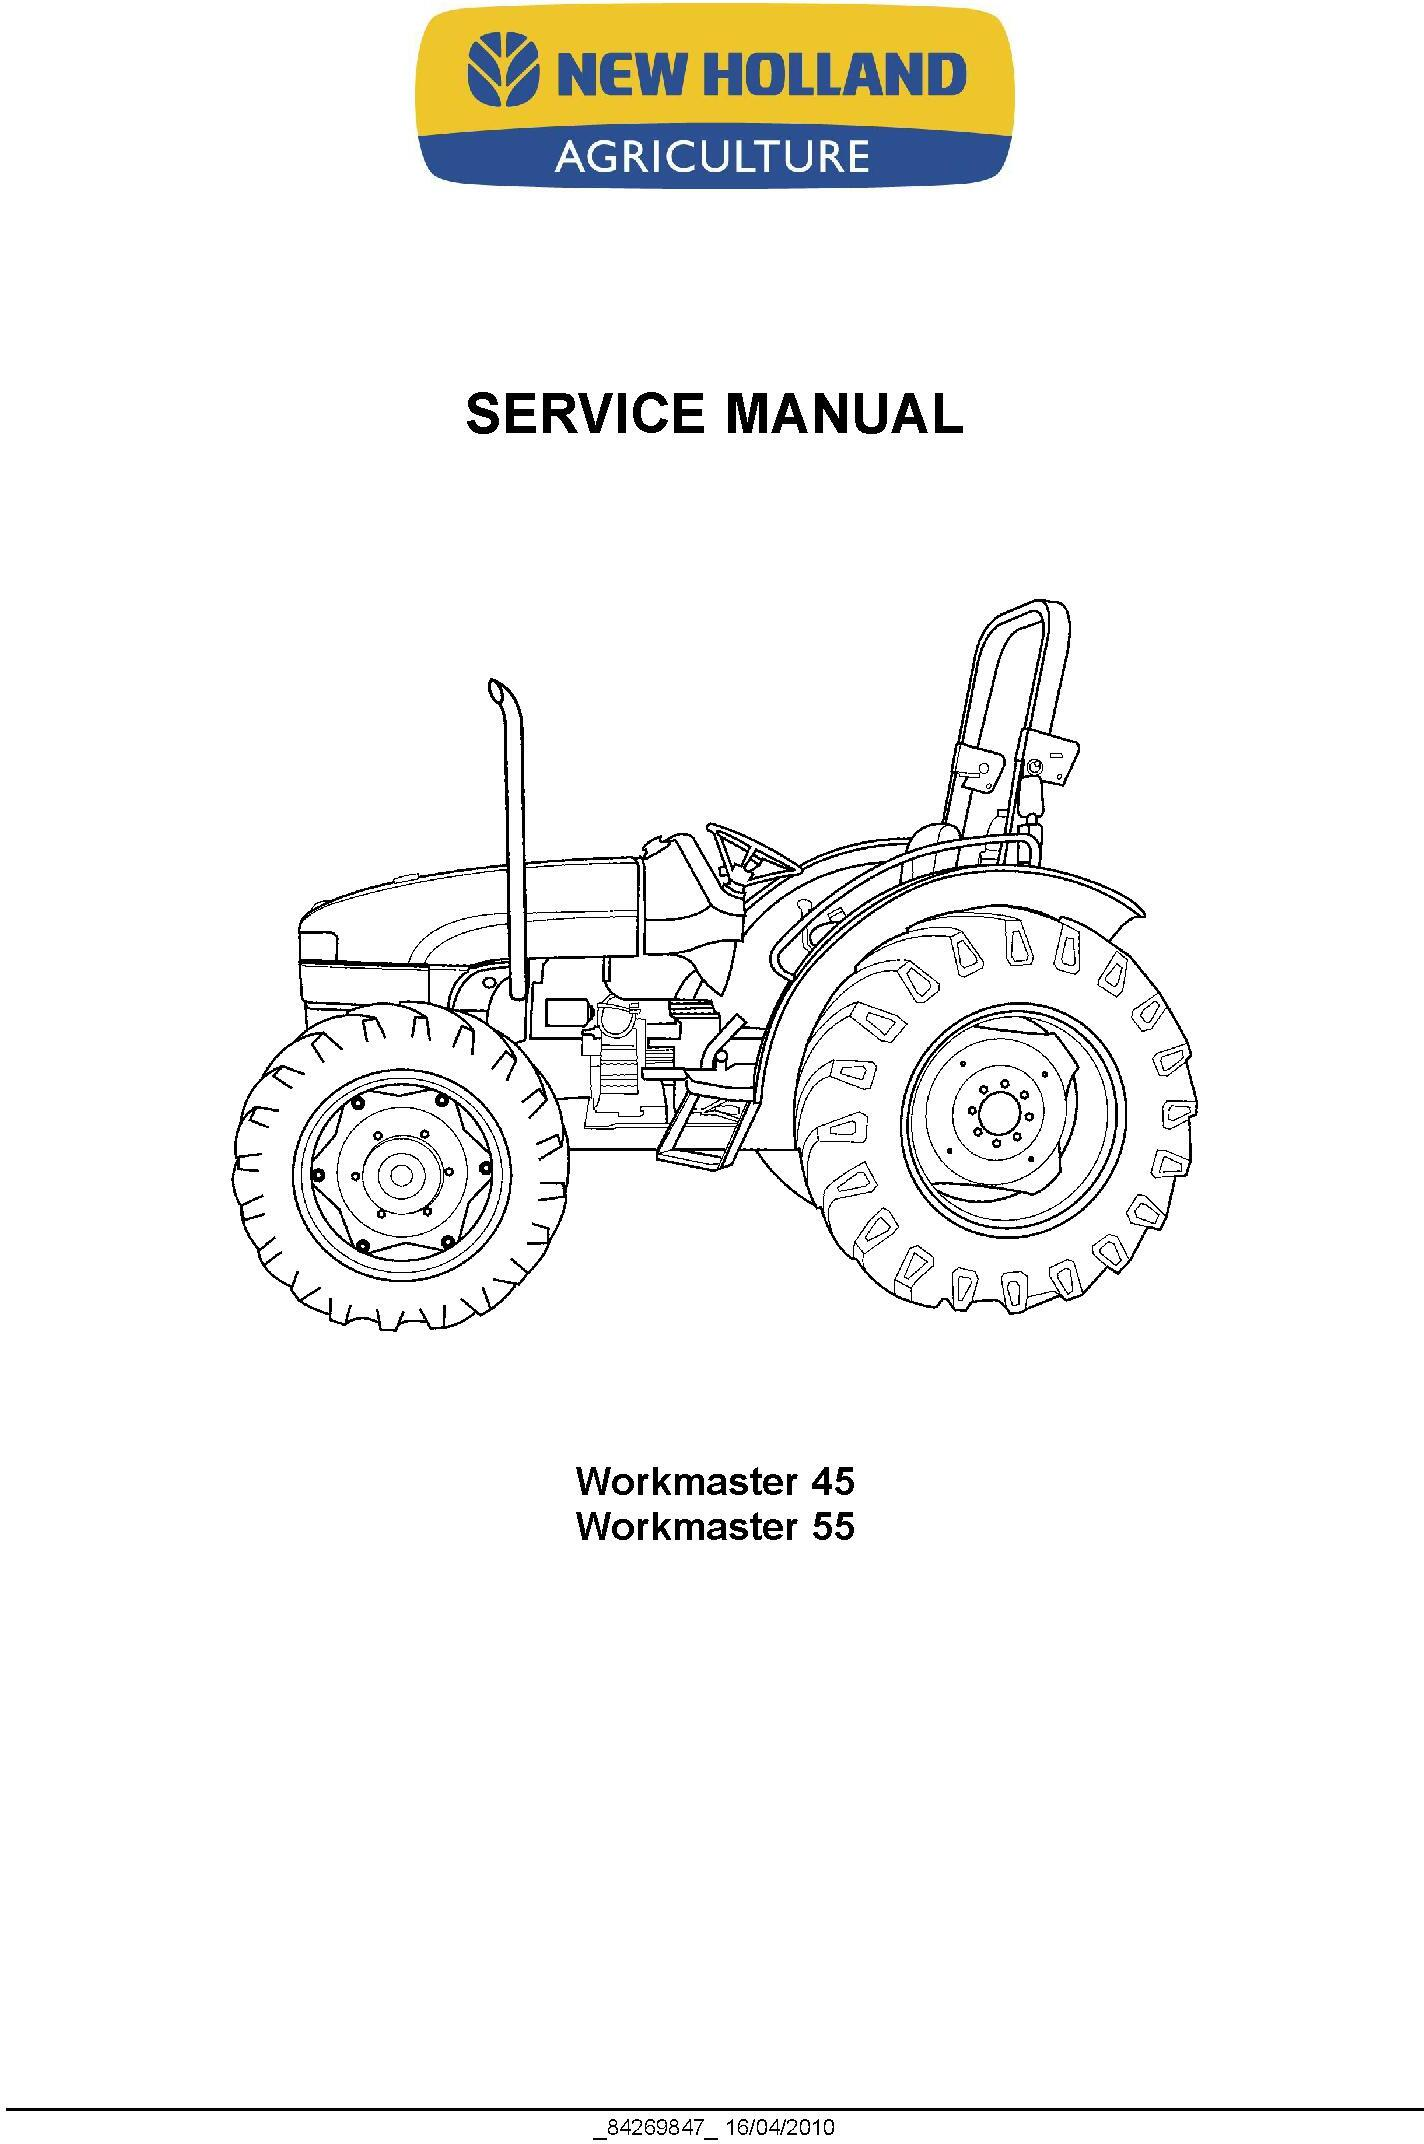 New Holland Workmaster 45 Workmaster 55 Tractor Complete